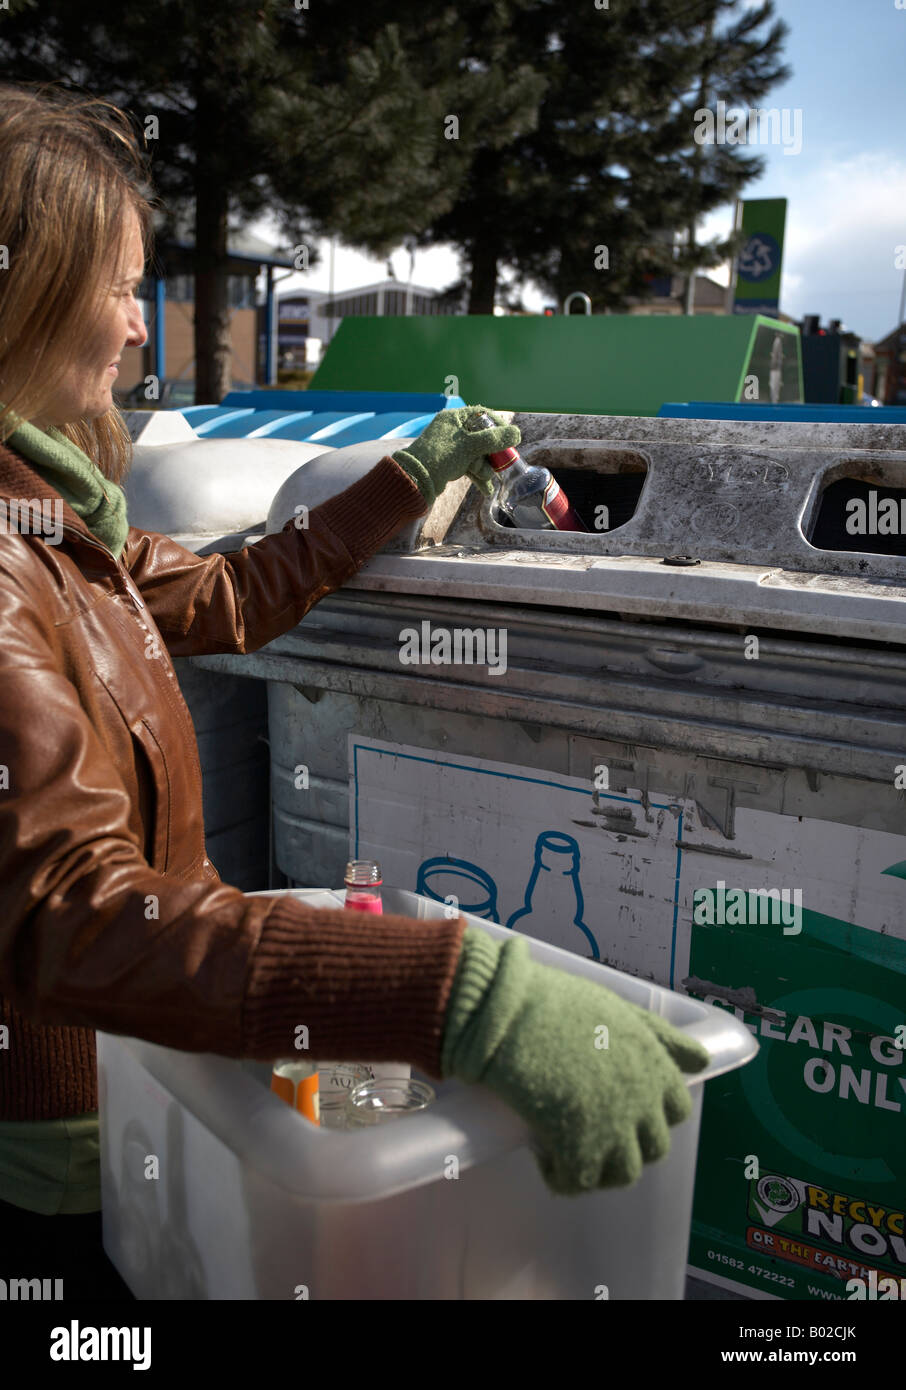 Woman recycling glass at a bottle bank - Stock Image